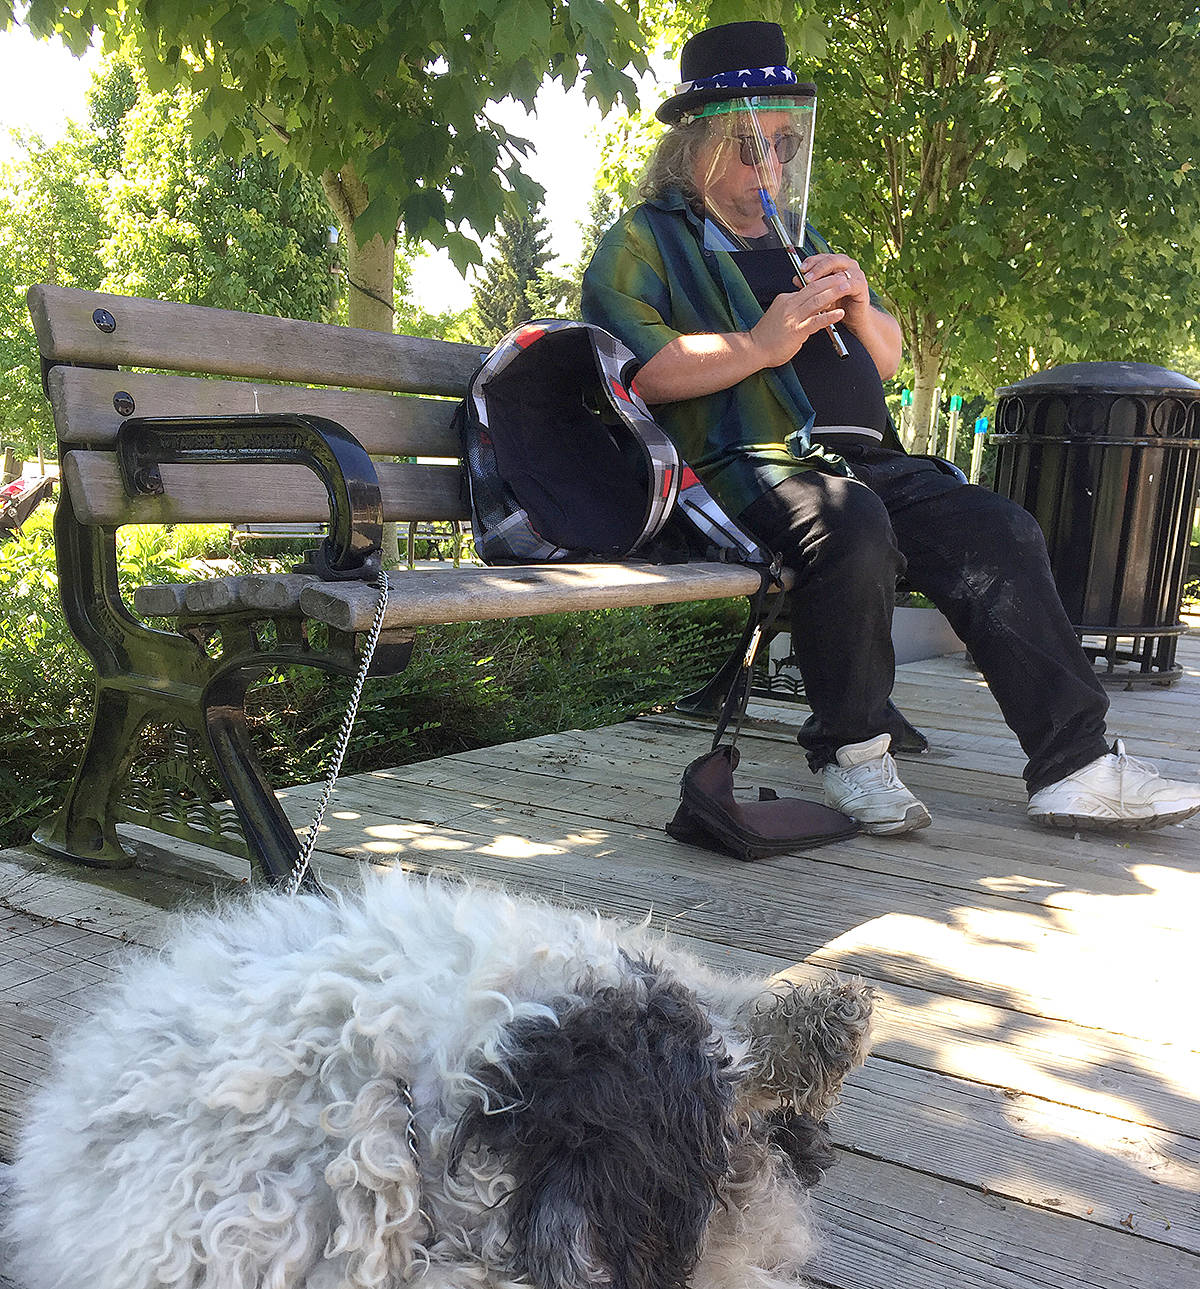 Mike and Oskar's act goes anti-viral. The musical human-canine duo perform in Fort Langley, as they have for a long time. It's just the face shield that has changed. (Special to Langley Advance Times)